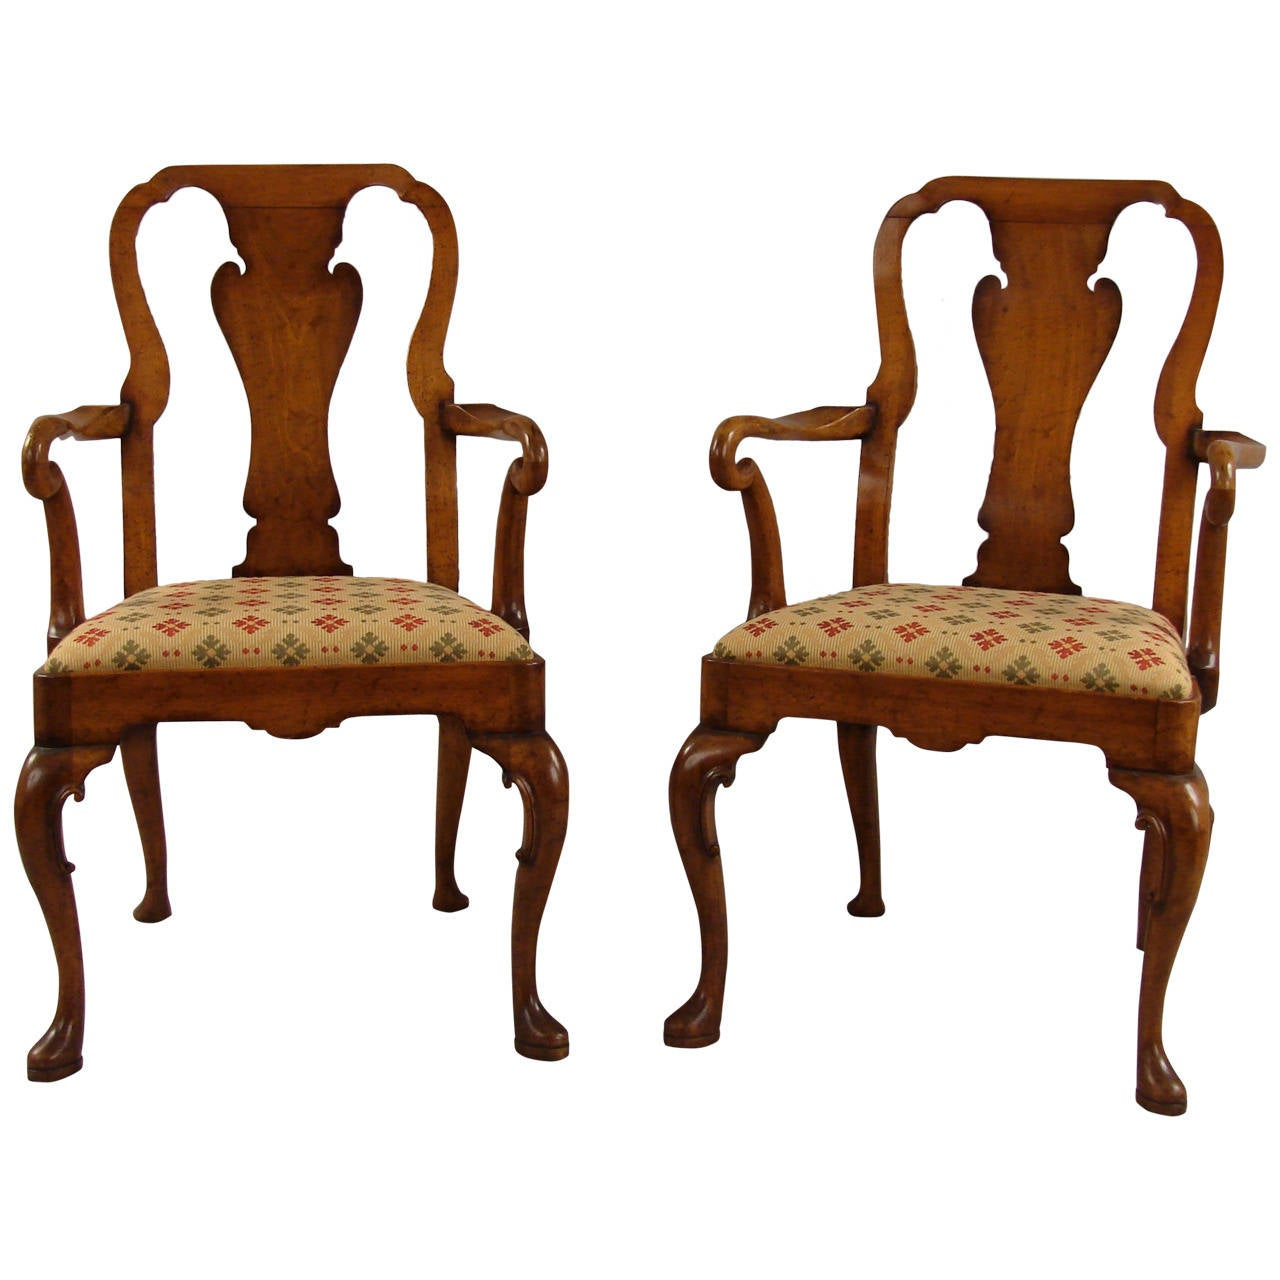 Pair of queen anne style walnut armchairs at 1stdibs for Stile queen anne